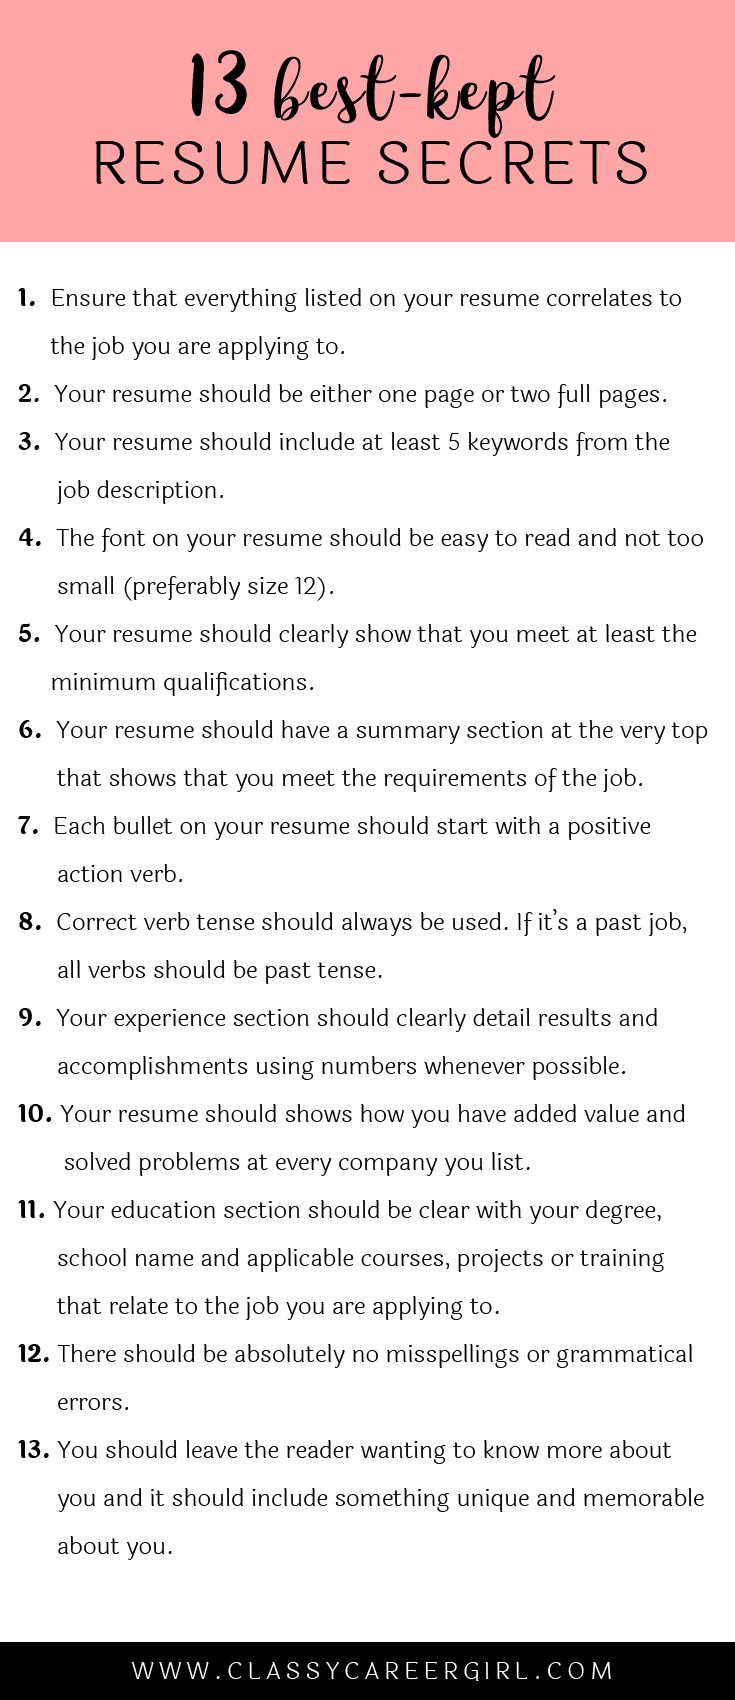 Opposenewapstandardsus  Pleasant  Ideas About Resume On Pinterest  Cv Format Resume Cv And  With Fair Some Hiring Managers Will Toss Your Resume Out If You Dont Know These  With Attractive High School Resume For College Application Also Graphic Designer Resume Examples In Addition What Are Good Skills To List On A Resume And Resume Online Template As Well As Resume For Government Job Additionally Please See Attached Resume From Pinterestcom With Opposenewapstandardsus  Fair  Ideas About Resume On Pinterest  Cv Format Resume Cv And  With Attractive Some Hiring Managers Will Toss Your Resume Out If You Dont Know These  And Pleasant High School Resume For College Application Also Graphic Designer Resume Examples In Addition What Are Good Skills To List On A Resume From Pinterestcom